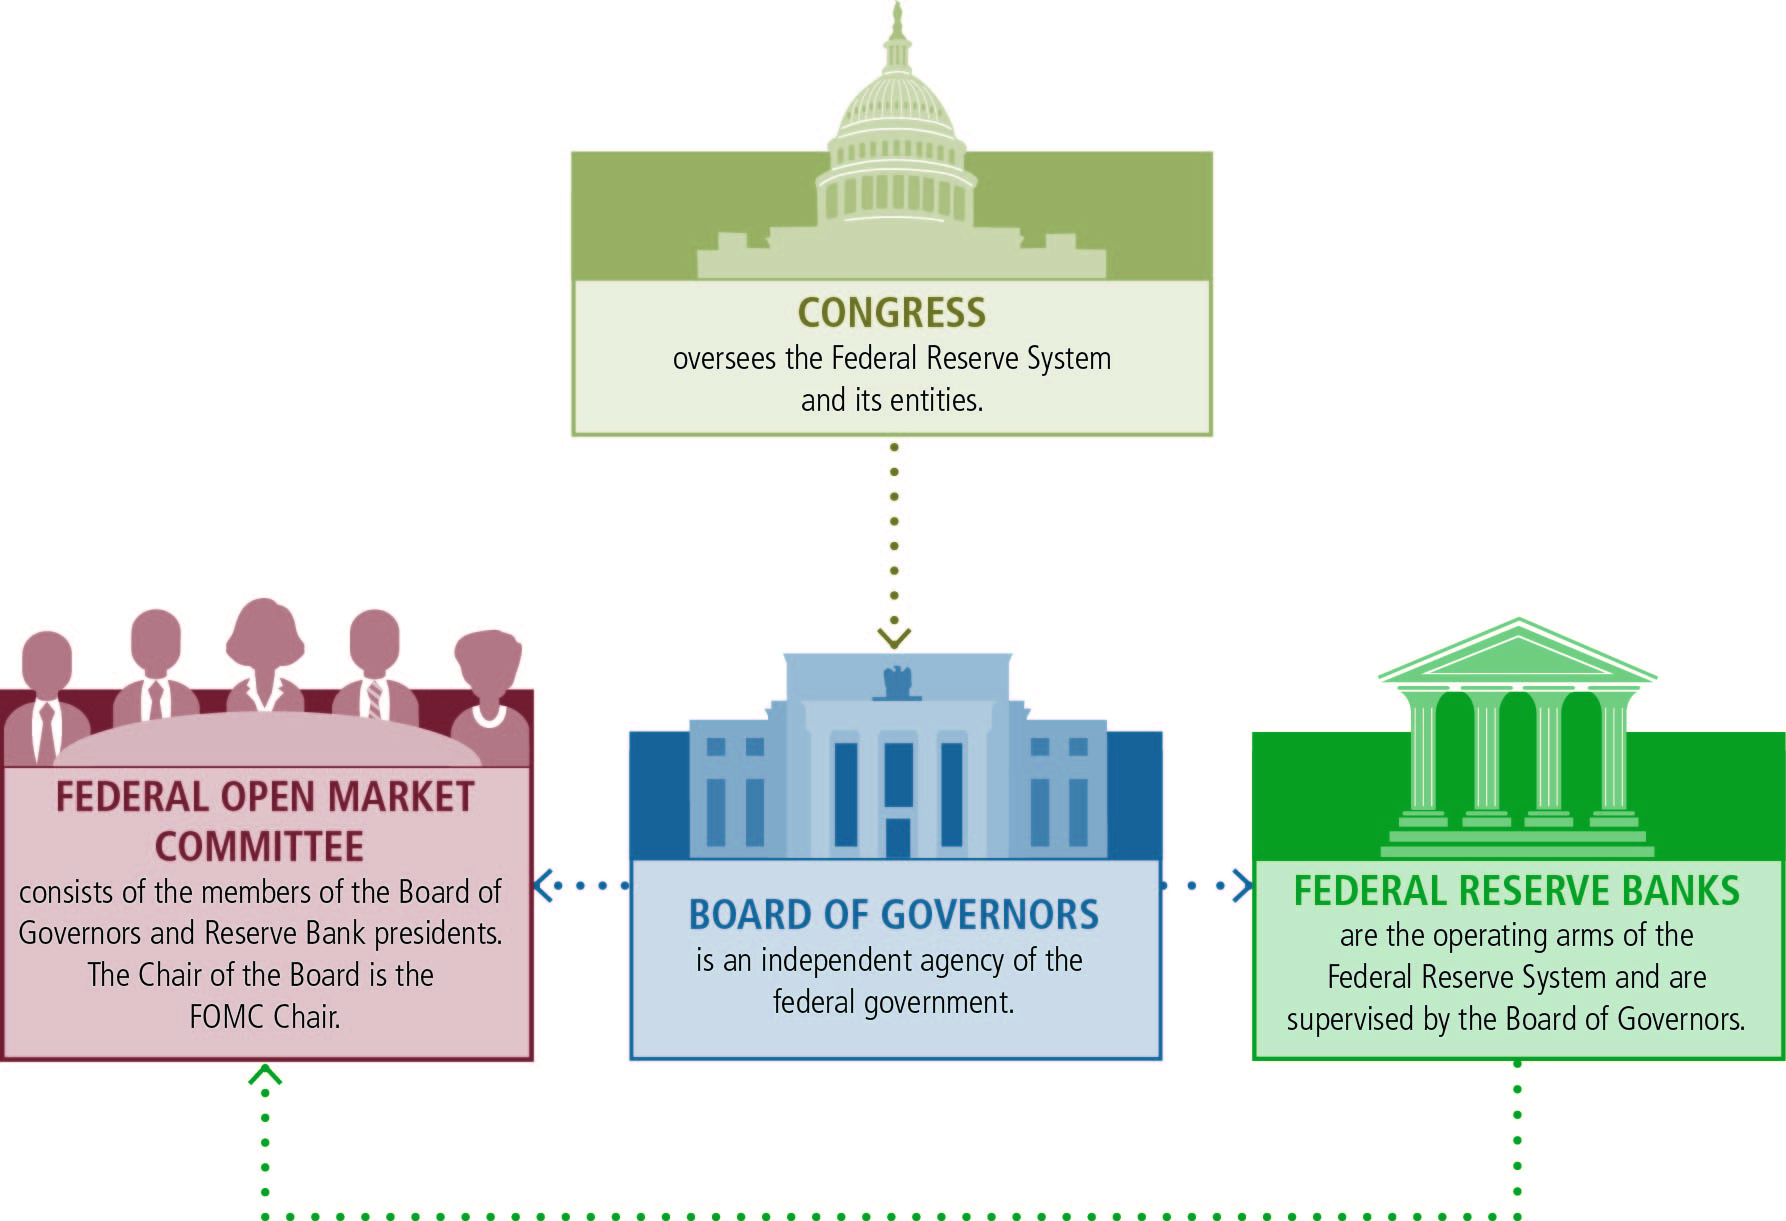 an analysis of the federal reserve system Source: board of governors of the federal reserve system (us), 33 economic data releases, fred: download, graph, and track economic data.